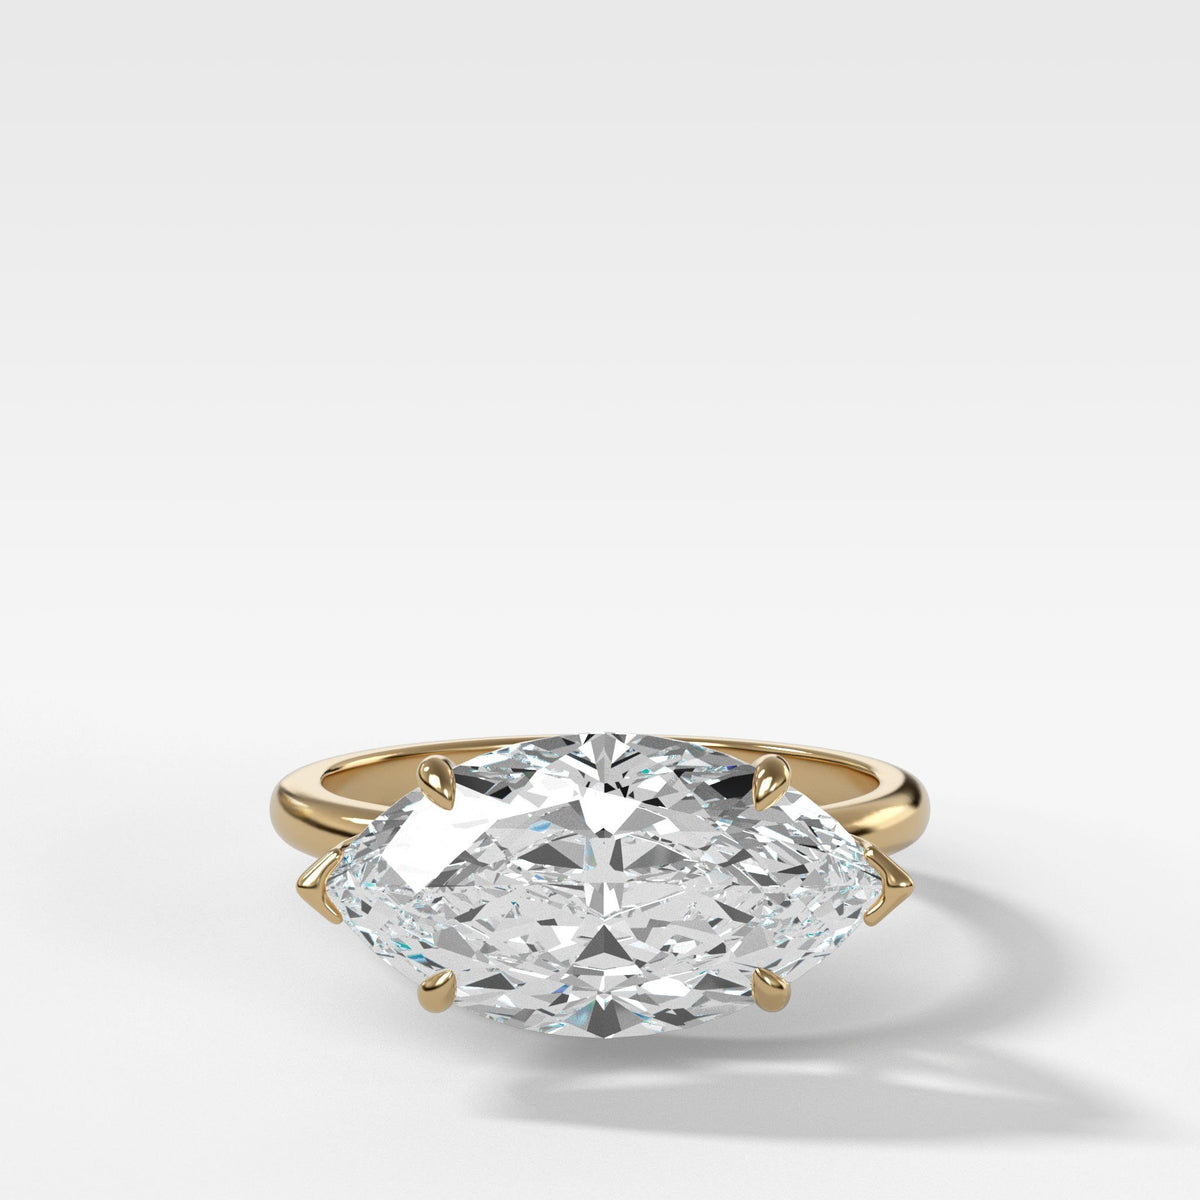 Crescent Solitaire With Marquise Cut in Yellow Gold by Good Stone